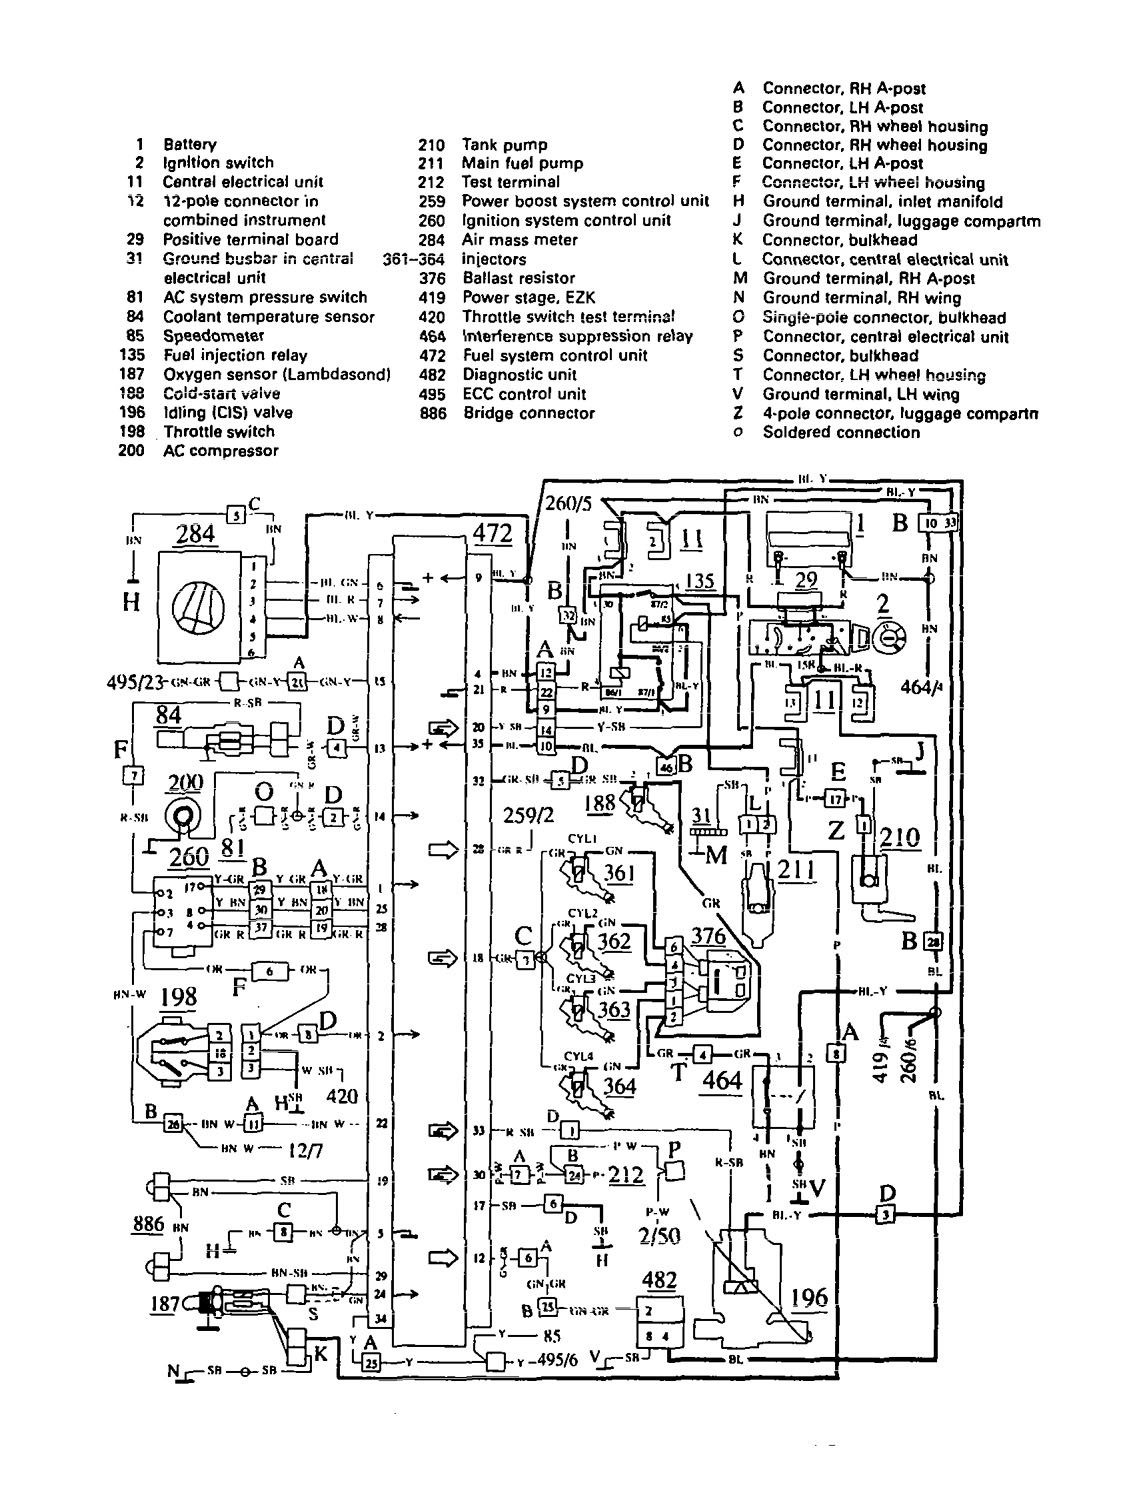 Bluebird Wiring Diagrams Diagram Auto Wiring Diagram